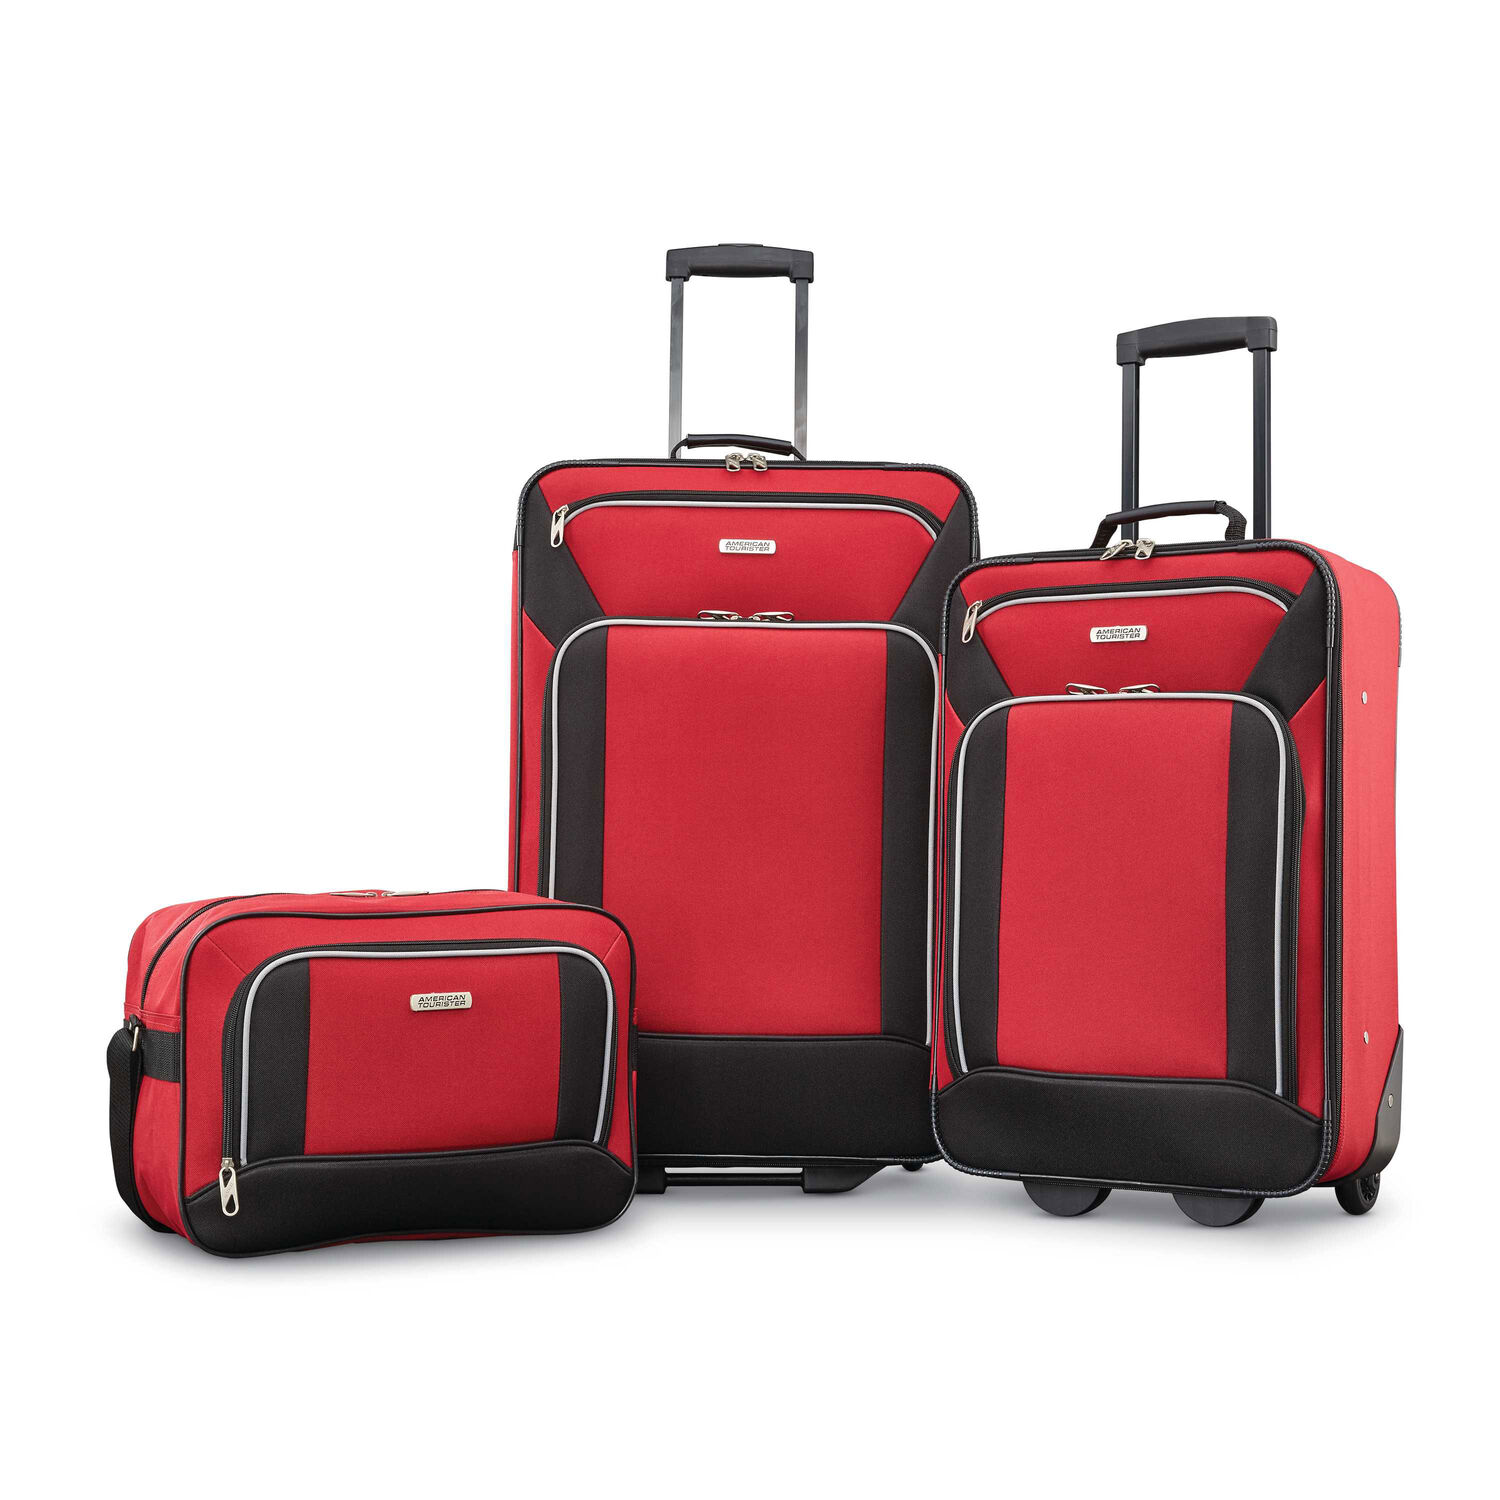 bca1e44662dd American Tourister Fieldbrook XLT 3 Piece Set